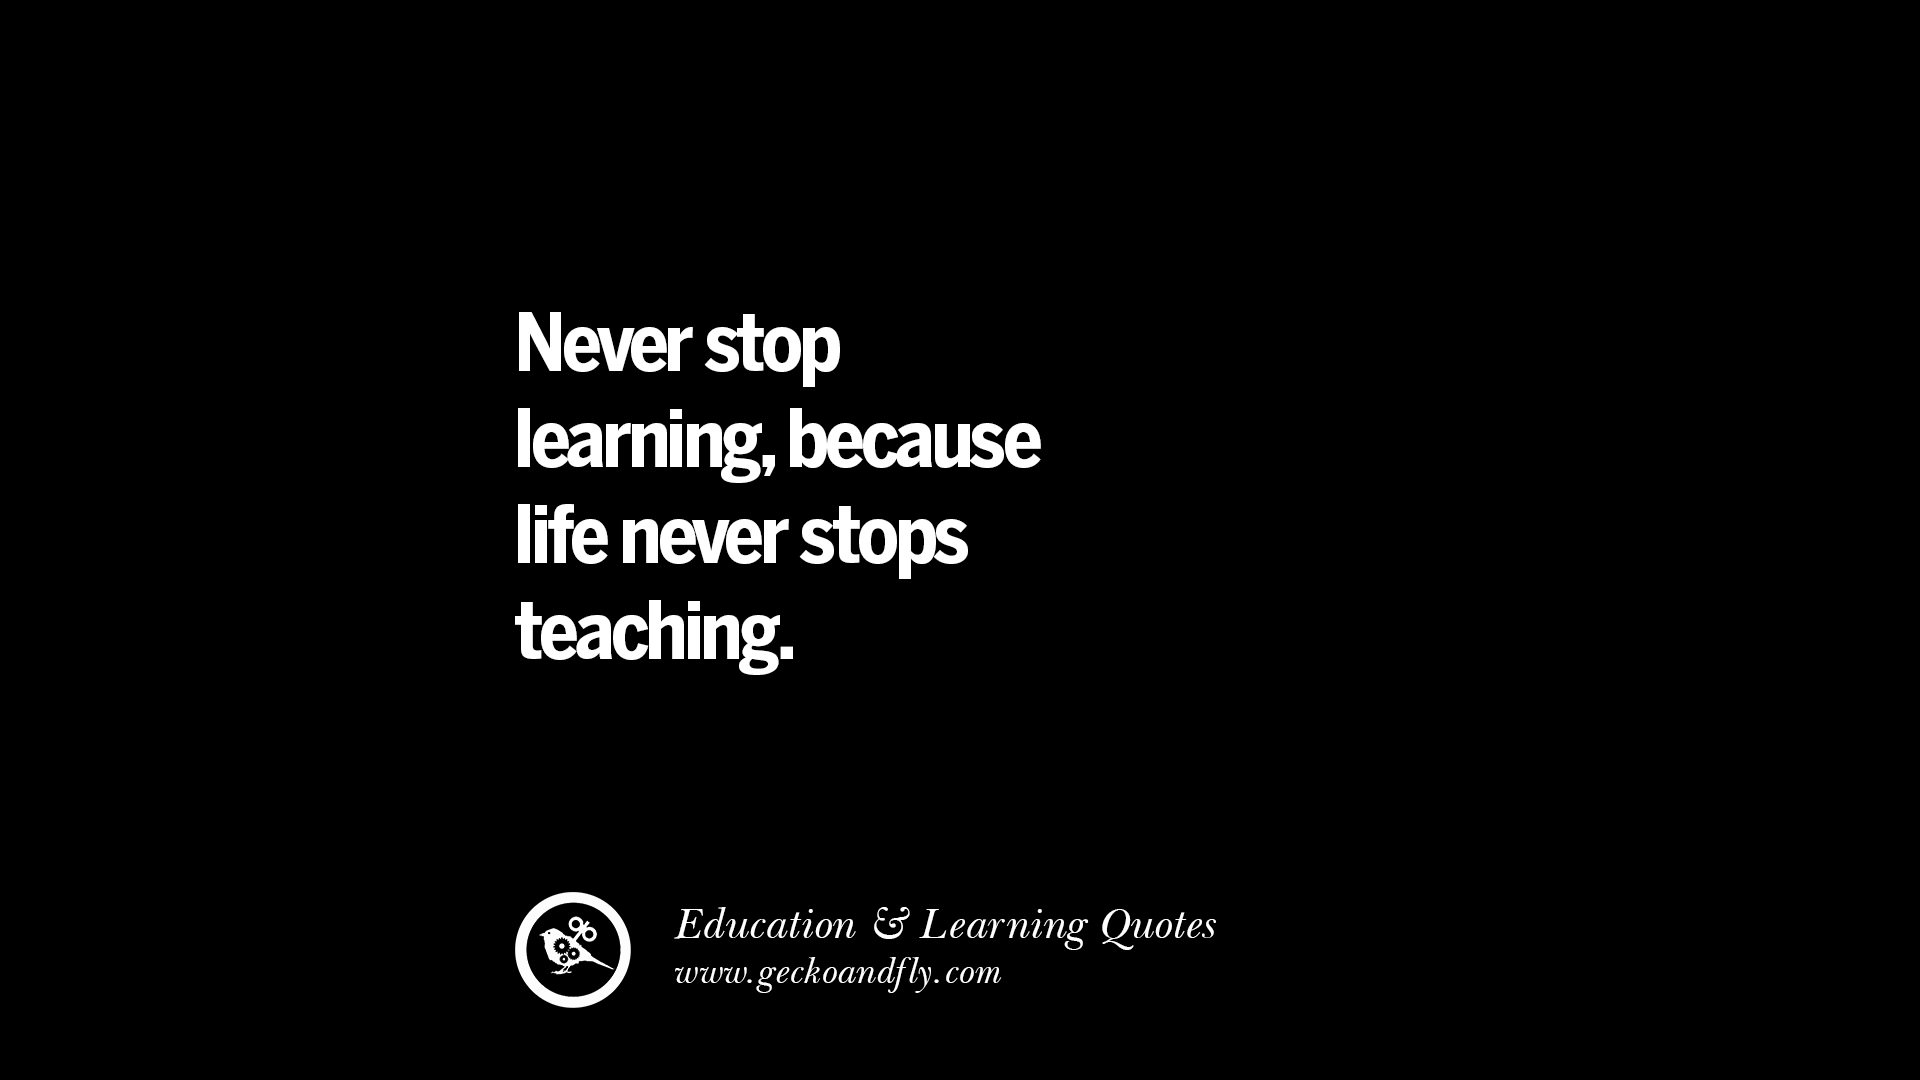 Quotes About Learning   31 Quotes On Teaching Better And Make Learning More Effective